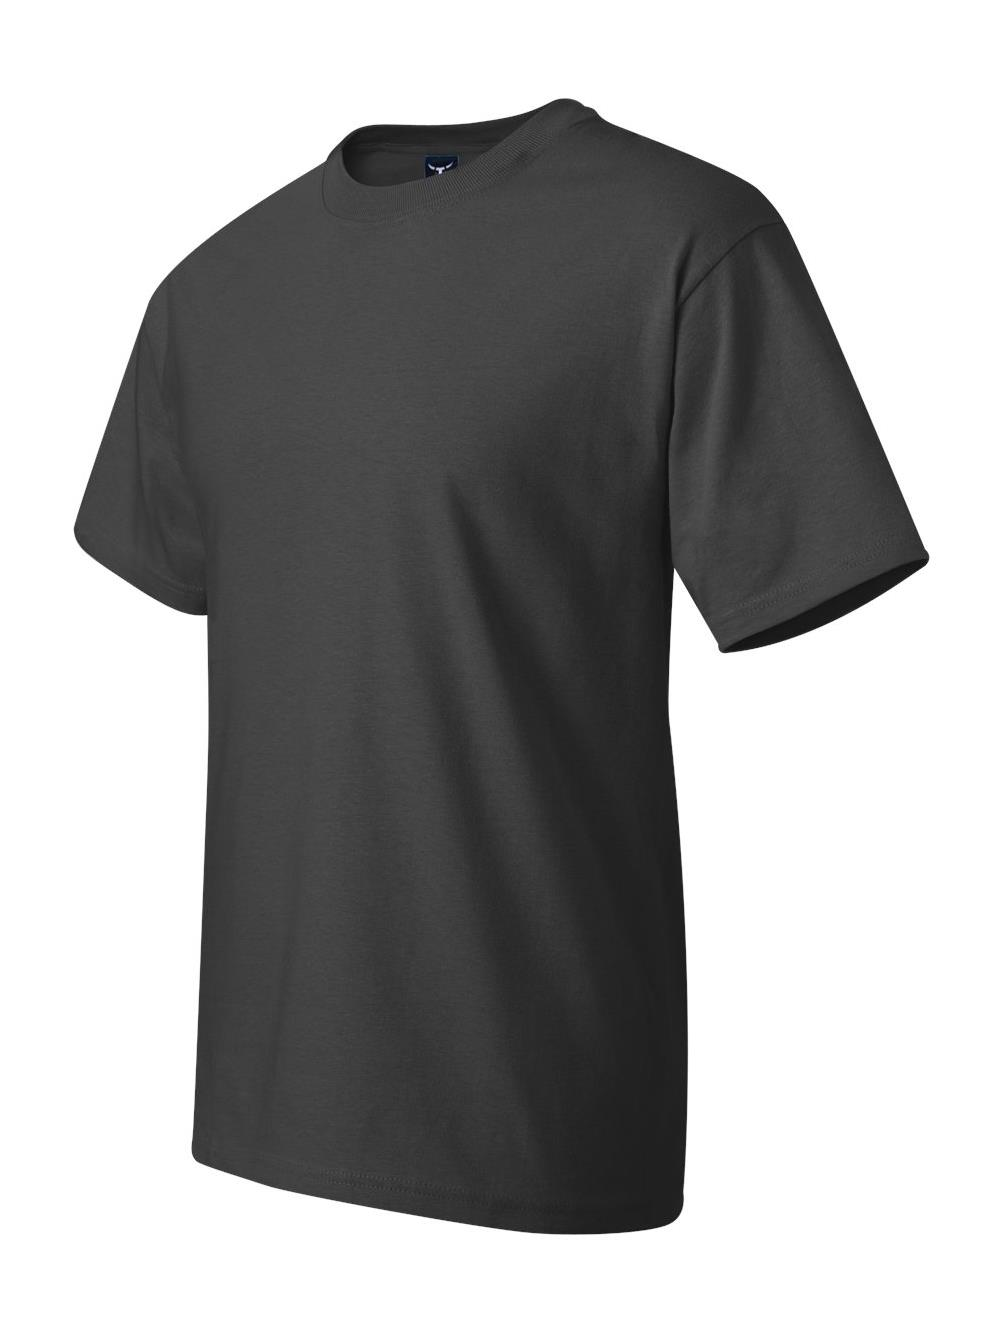 Hanes Hanes Mens Beefy T Crew Neck Short Sleeve T Shirt Up To